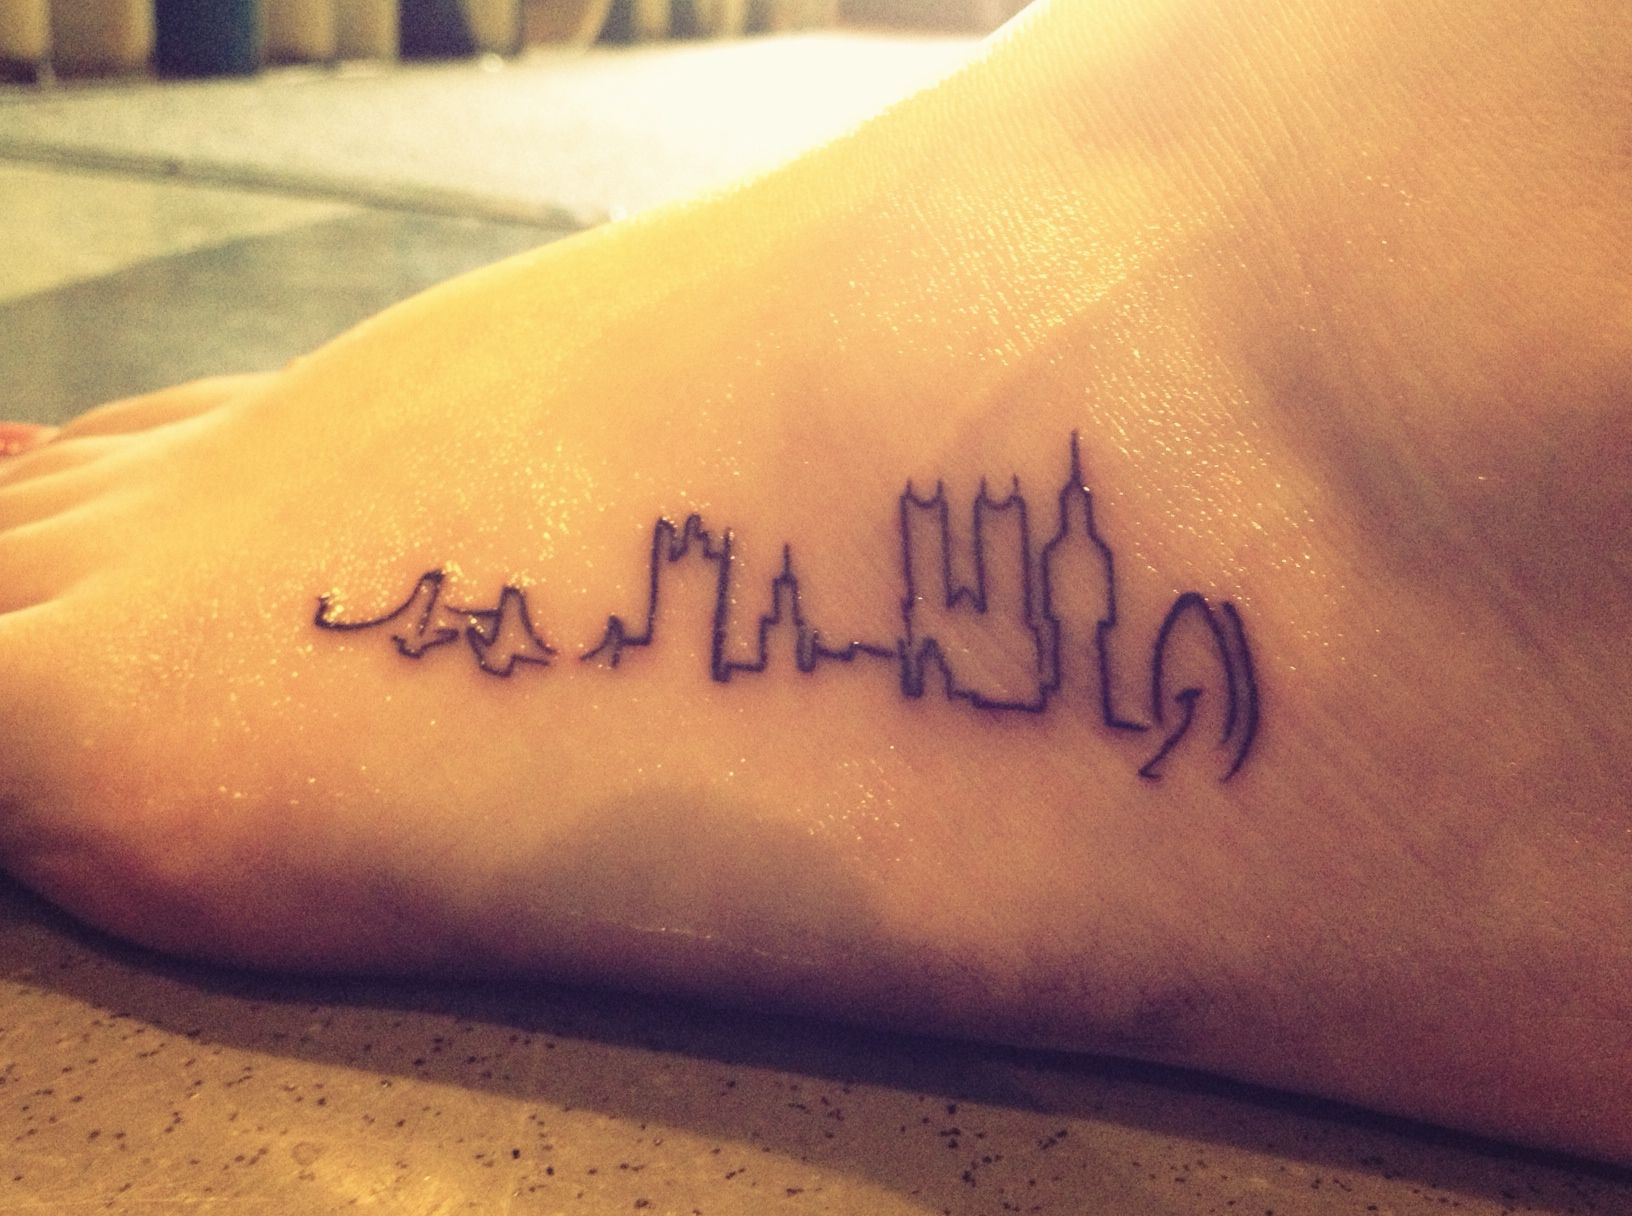 London skyline tat.  So cute!